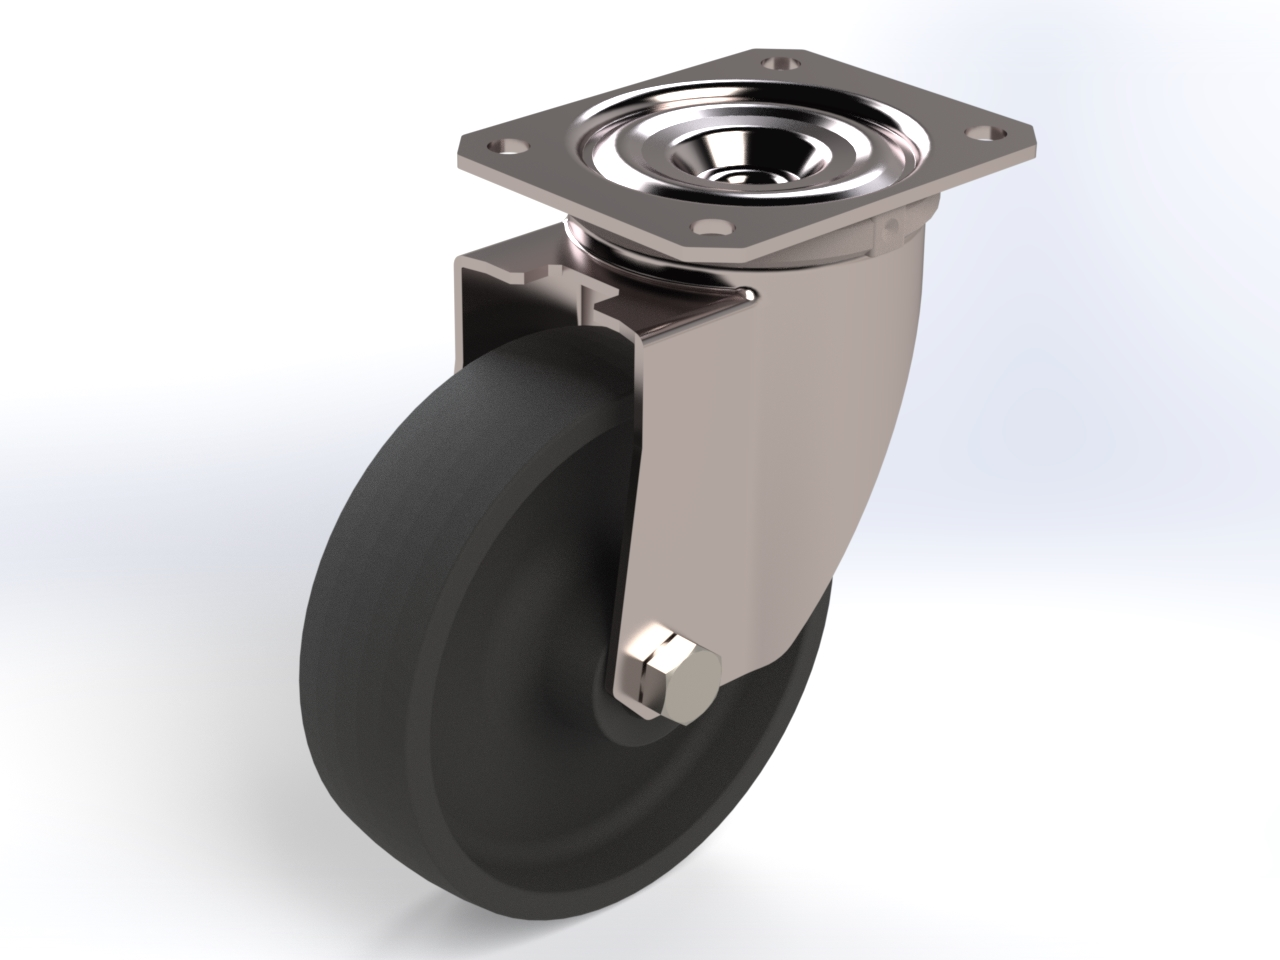 Series FS plain bearing, Swivel castors X20 (INOX) with plate fitting